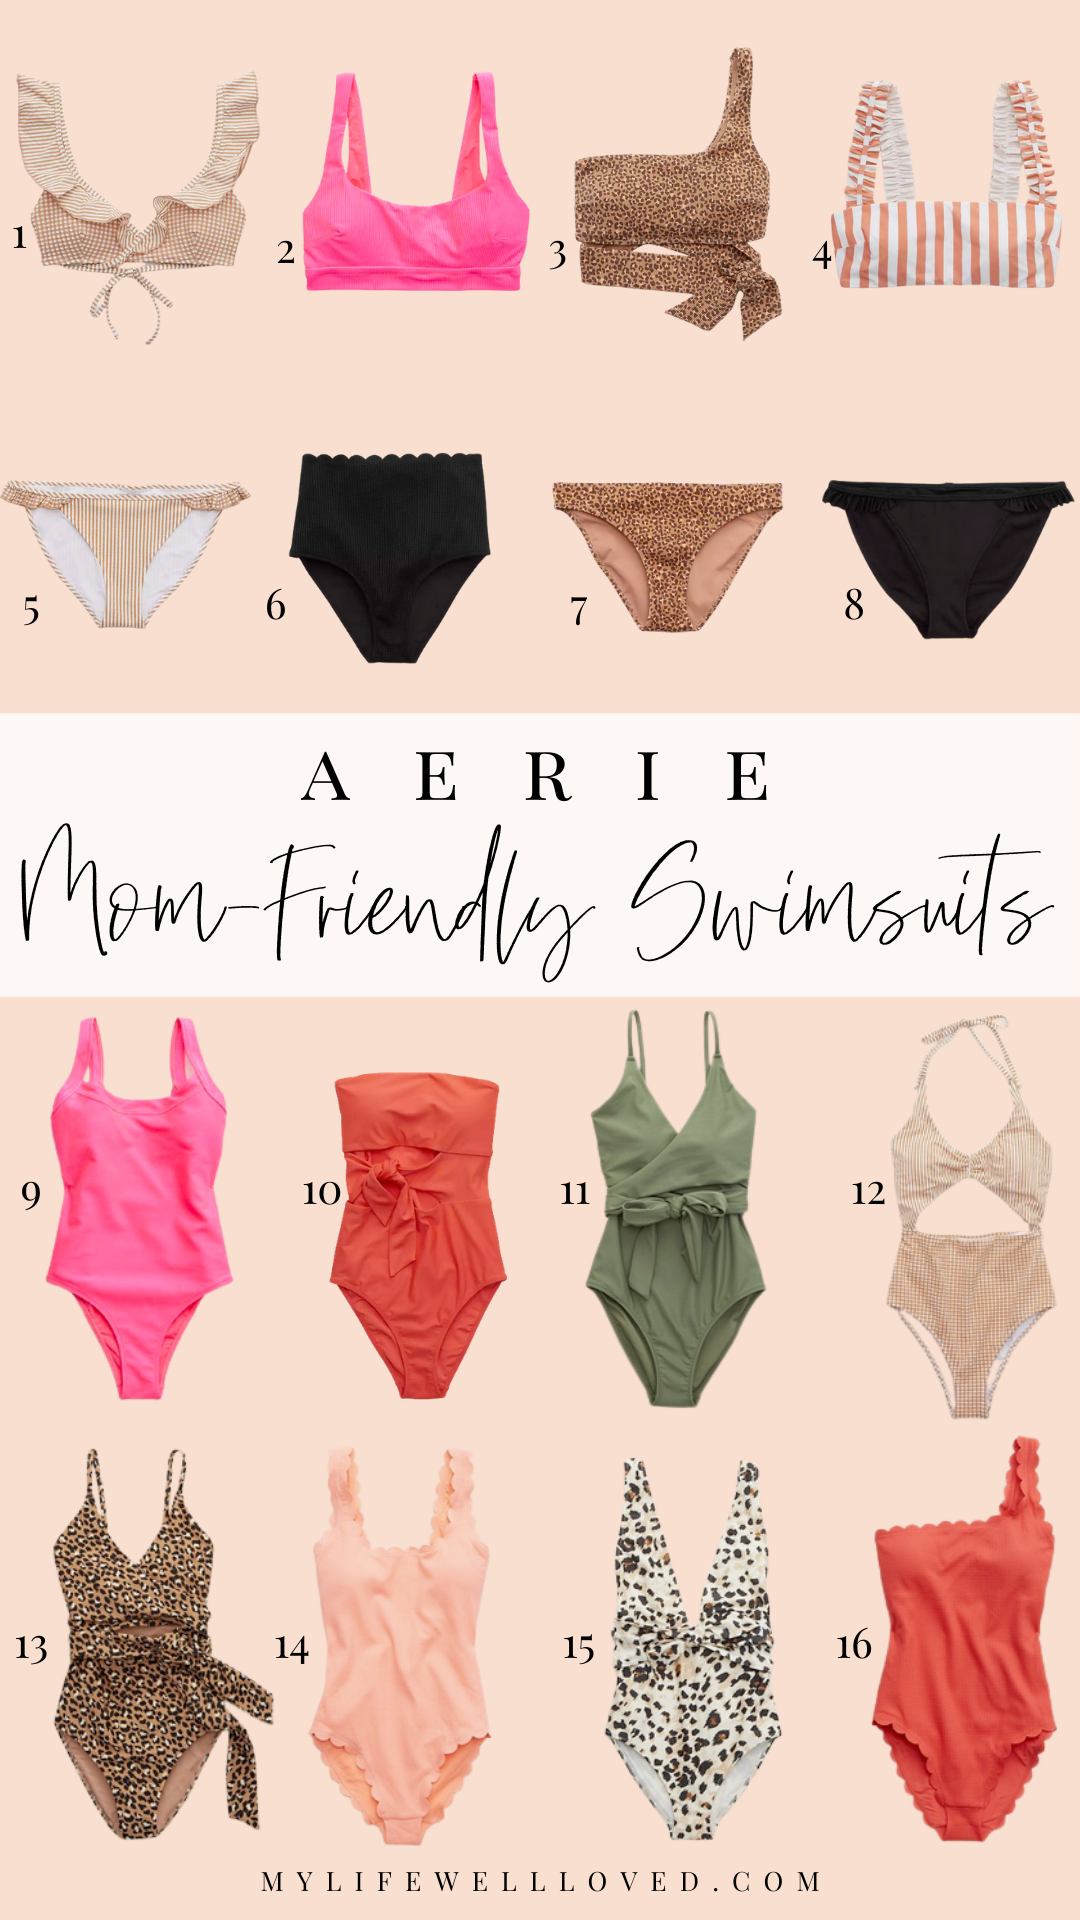 Moms Swim With Style: The Best Aerie Swimsuits For Women by Alabama Mommy + Style blogger, Heather Brown // My Life Well Loved